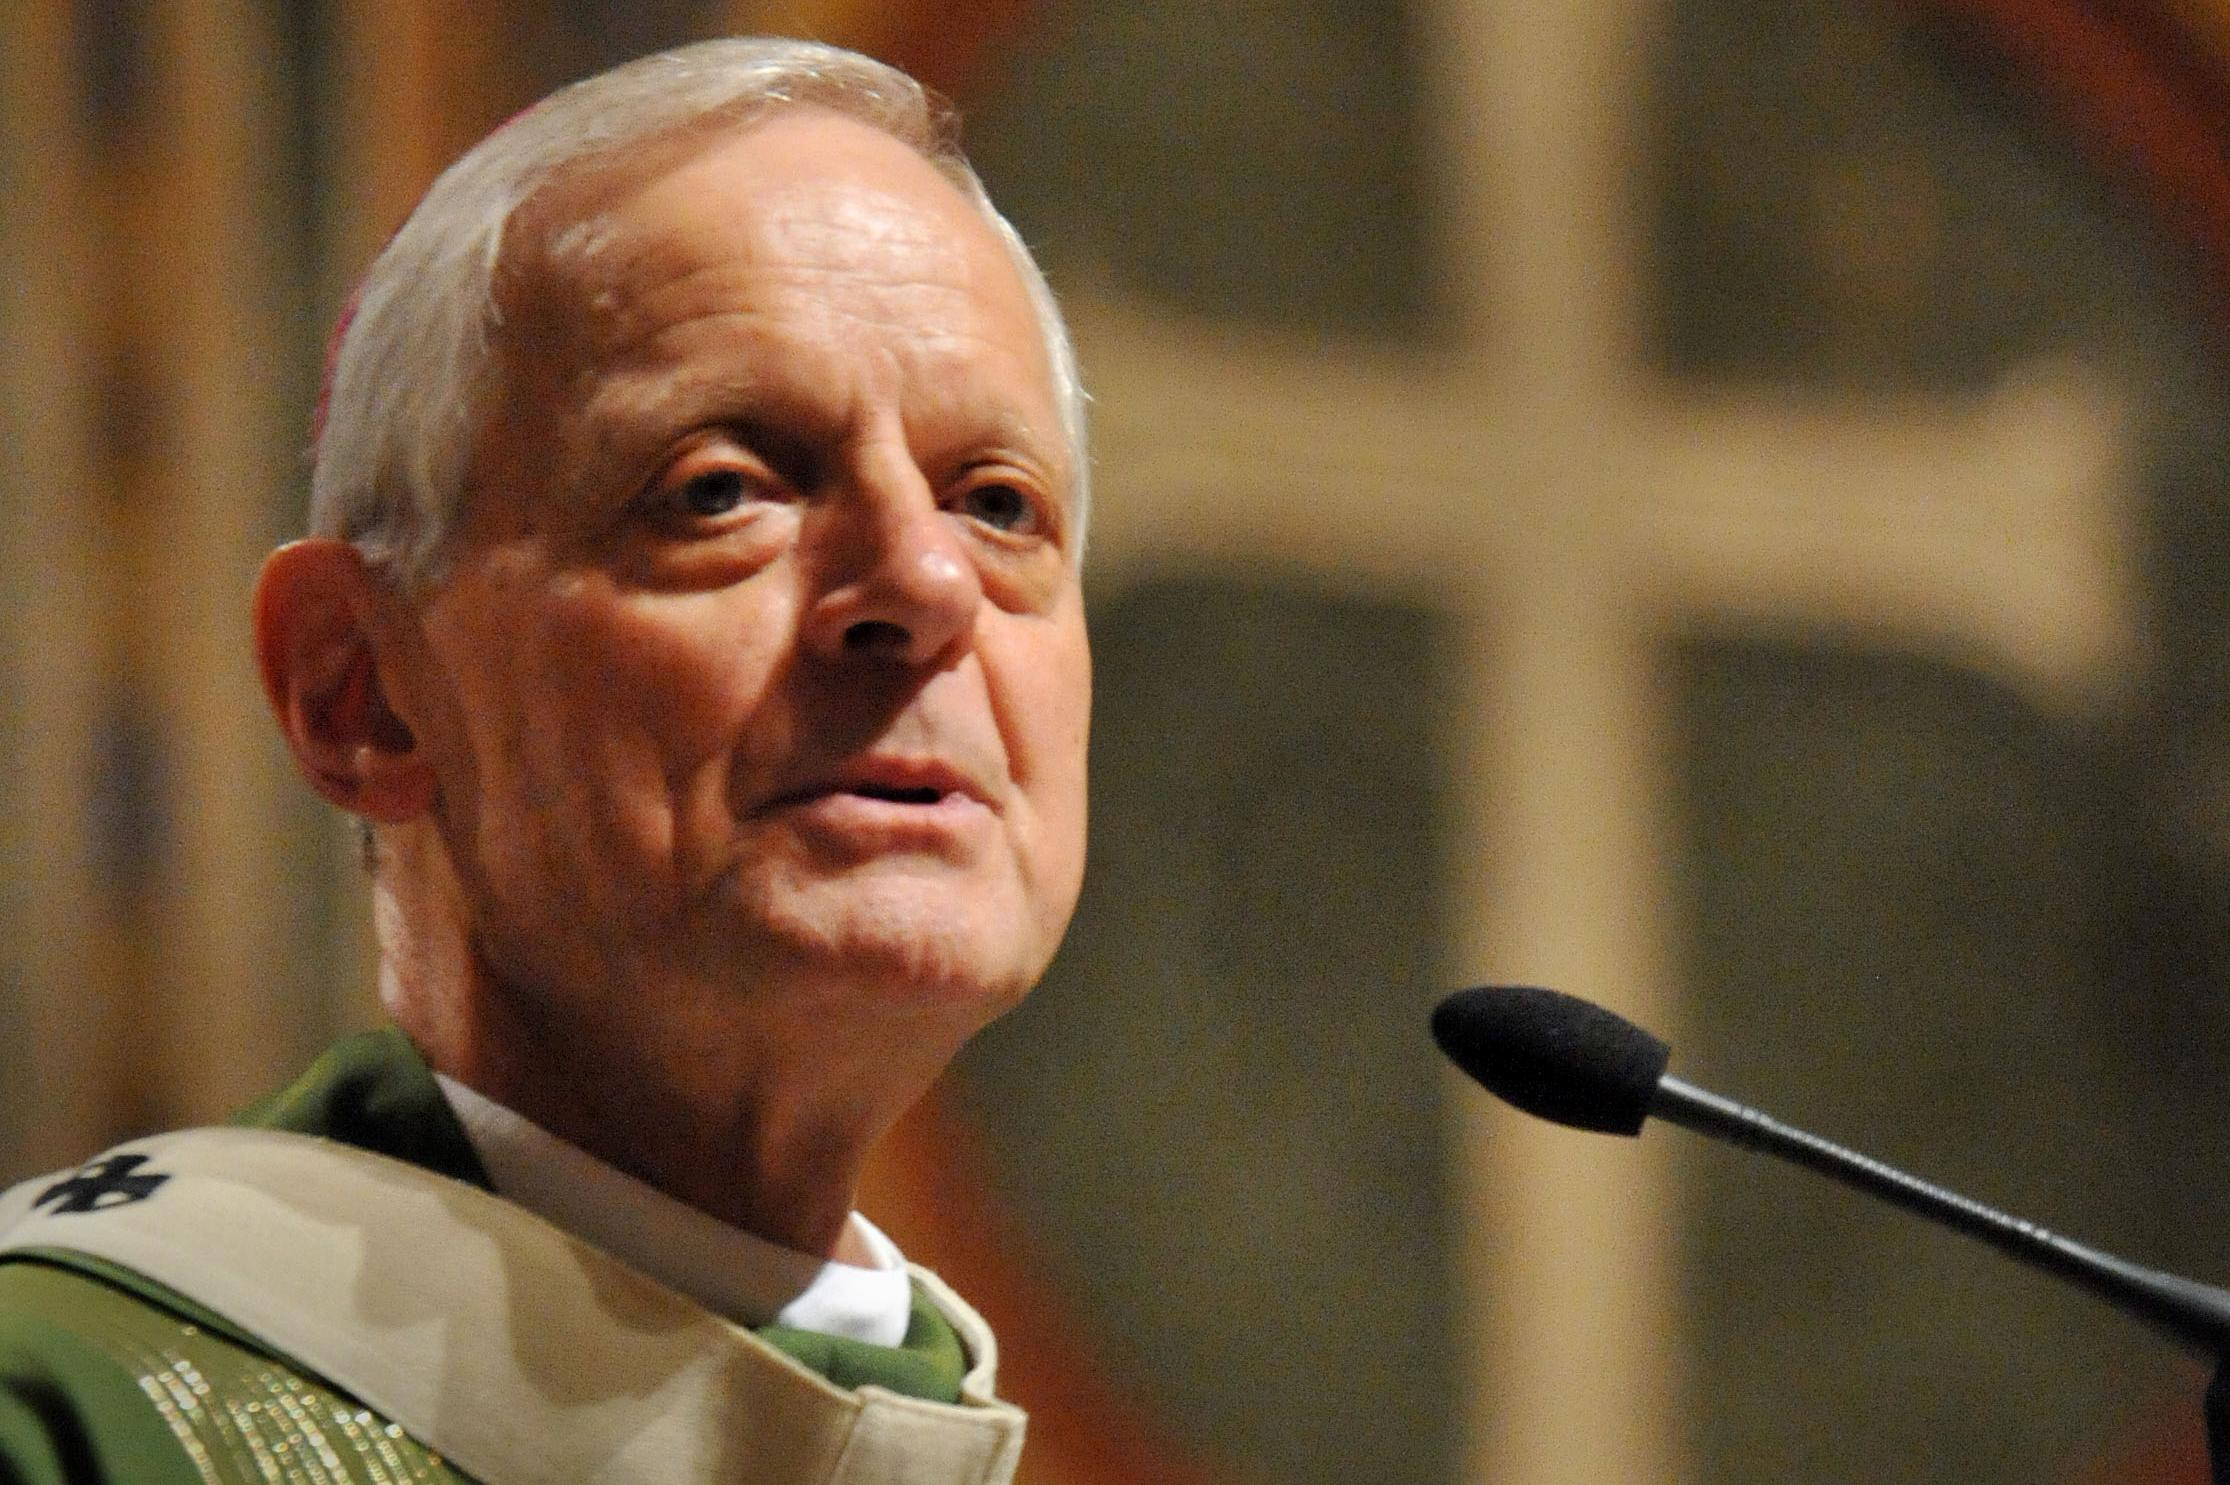 Despite past denials, D.C. Cardinal Donald Wuerl knew of sexual misconduct allegations against ex-cardinal Theodore McCarrick and reported them to Vatican